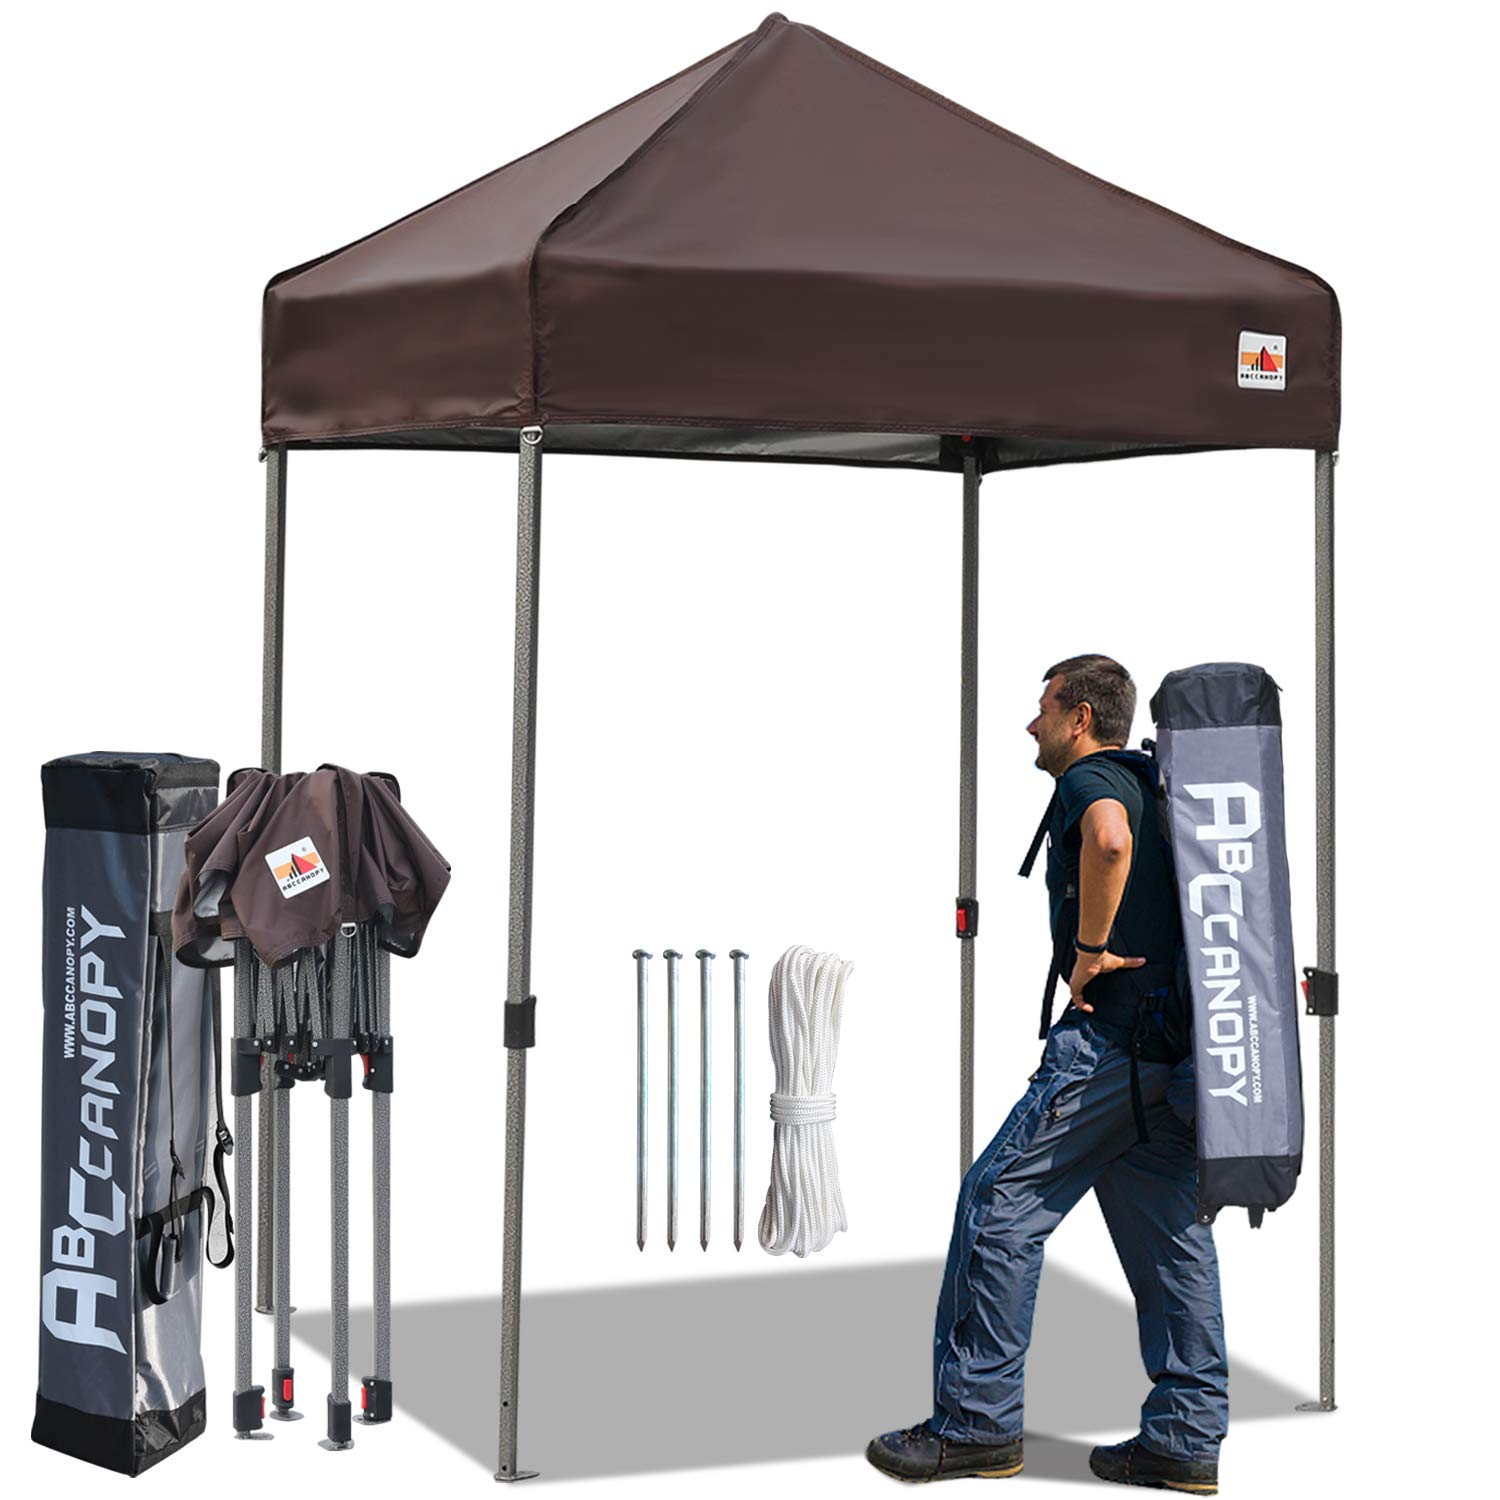 ABCCANOPY Tent Pop up Canopies 5 x5 Comapct Canopy Tent Outdoor Portable Canopies Sun Shelter with Backpack Roller Bag, Bonus 4 Stakes and Ropes